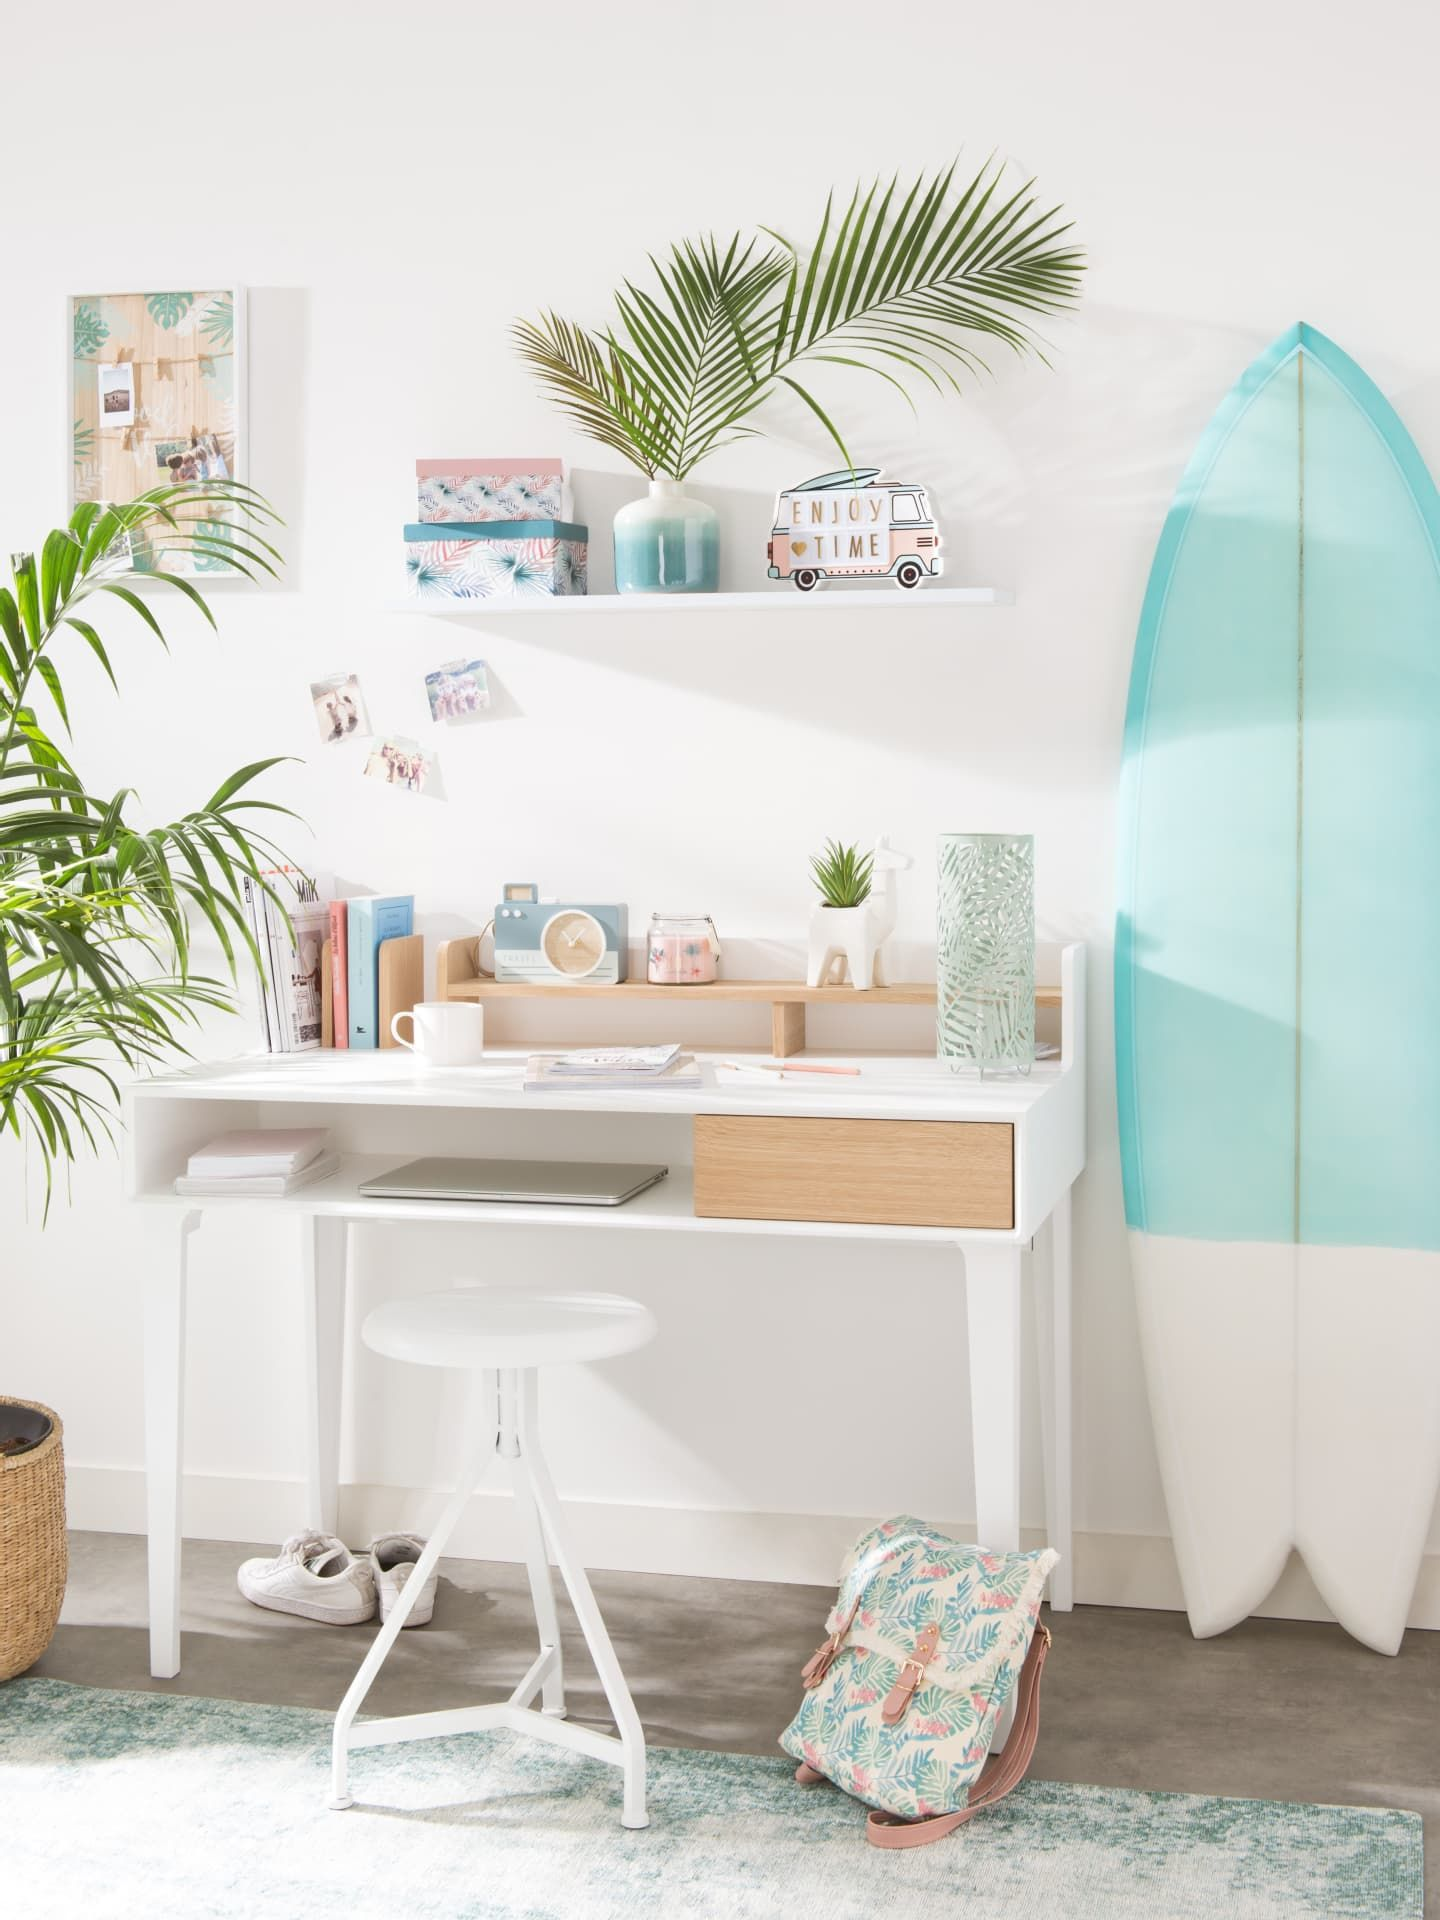 Surfer Style Home Workspace With Campervan Motifs Surfboard Decor